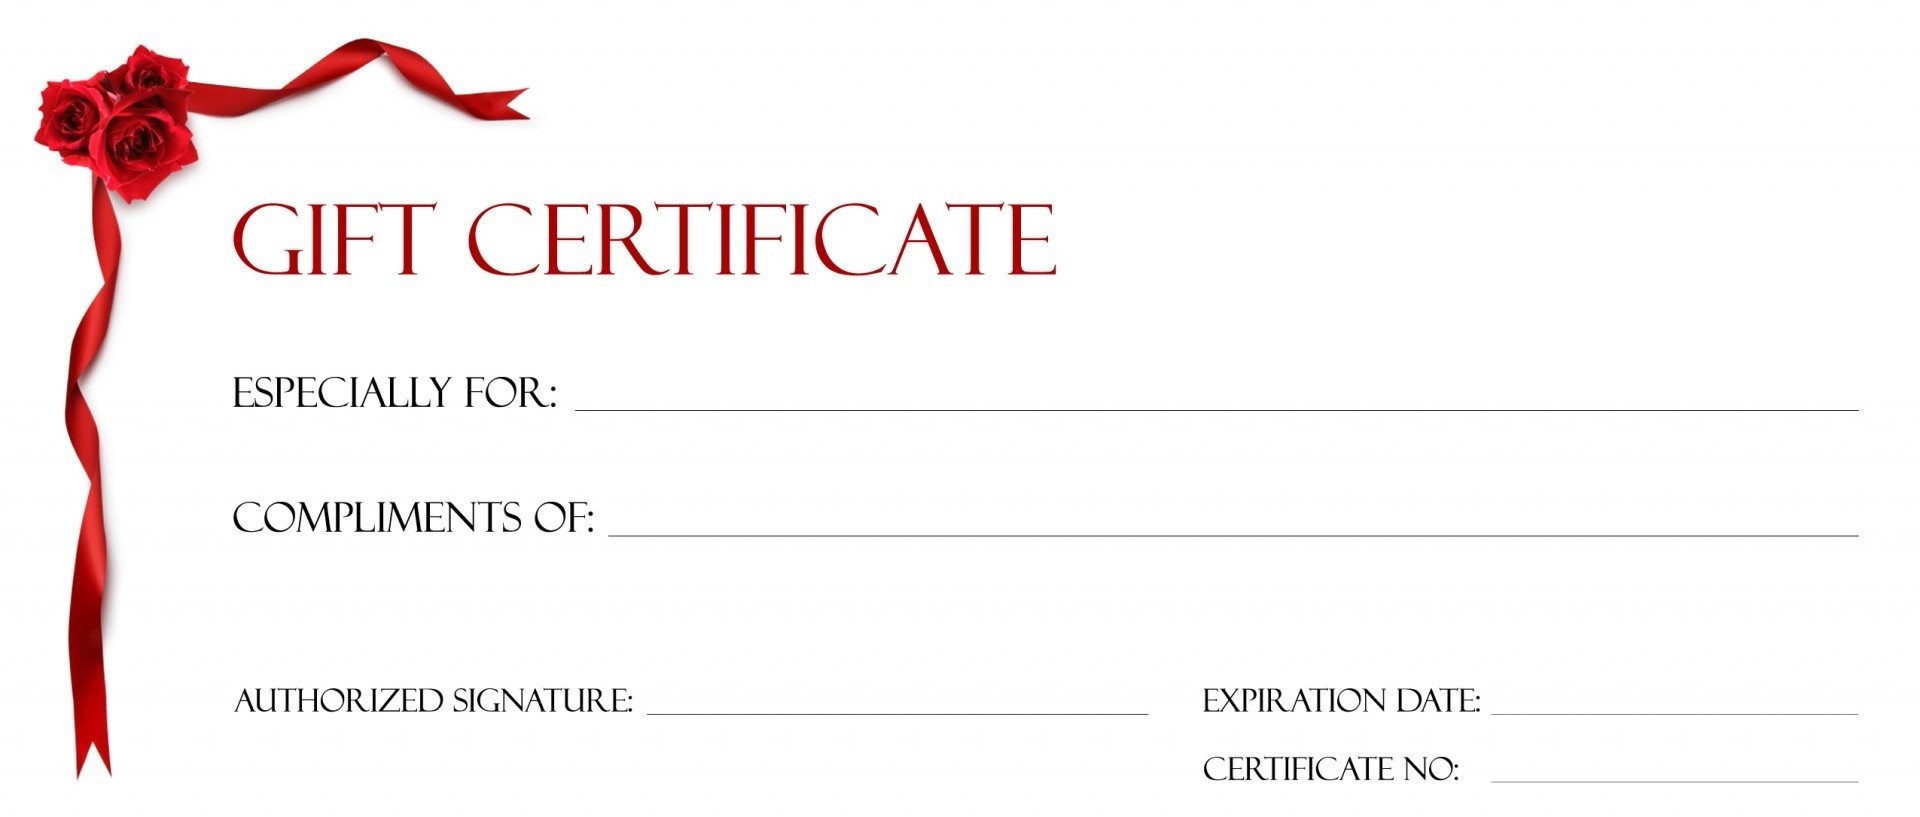 Gift Certificate Template Google Docs Gift Certificate Template for Google Docs